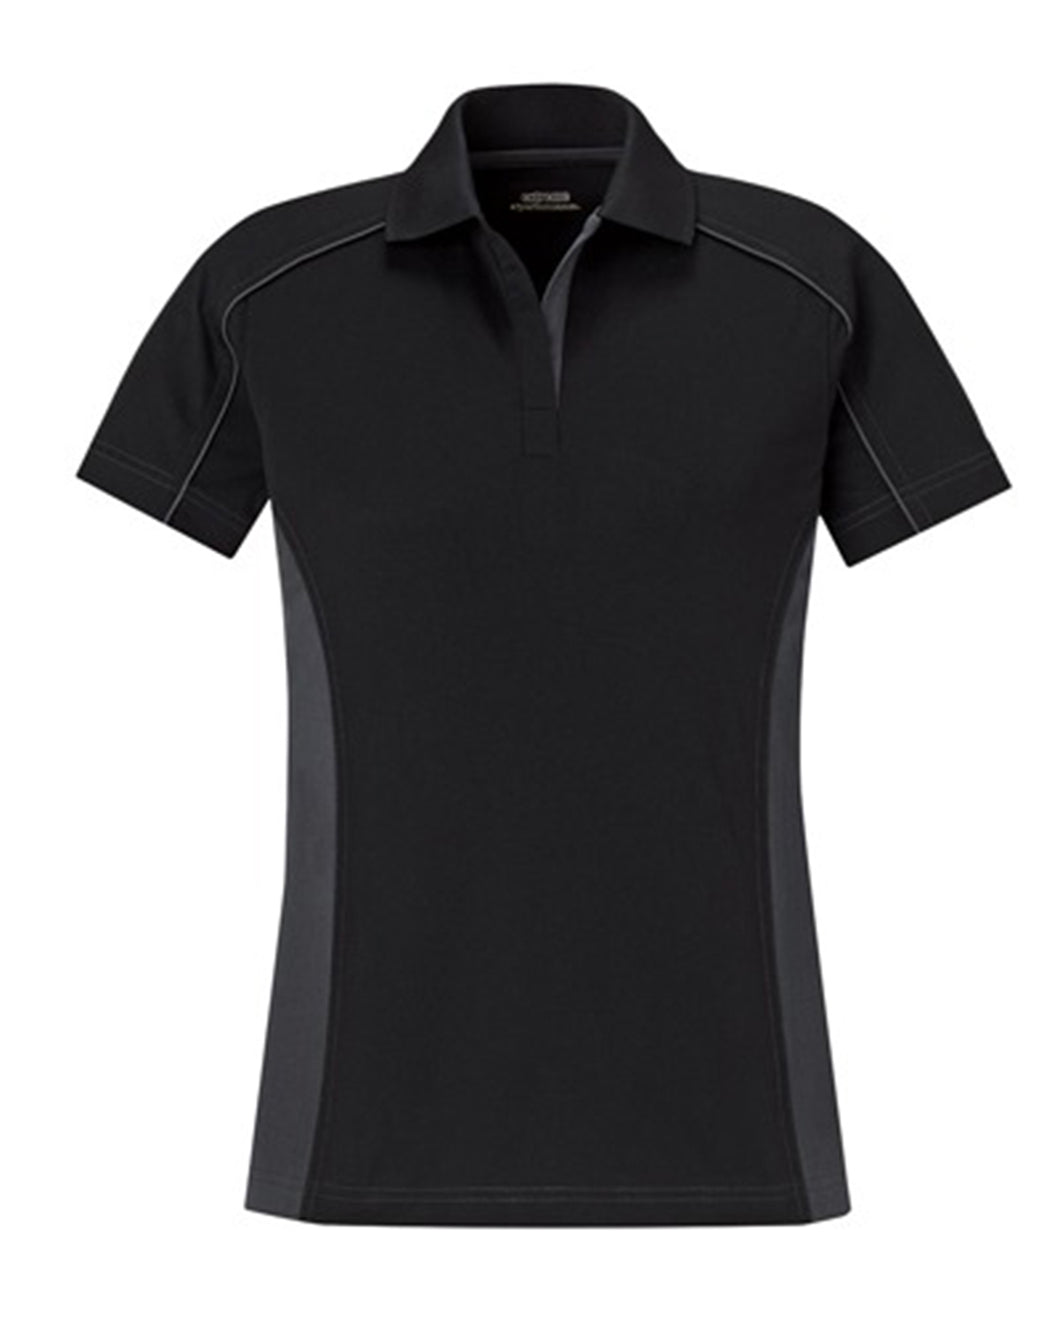 Ash City - Extreme Ladies' Eperformance™ Fuse Snag Protection Plus Colorblock Polo. 75113